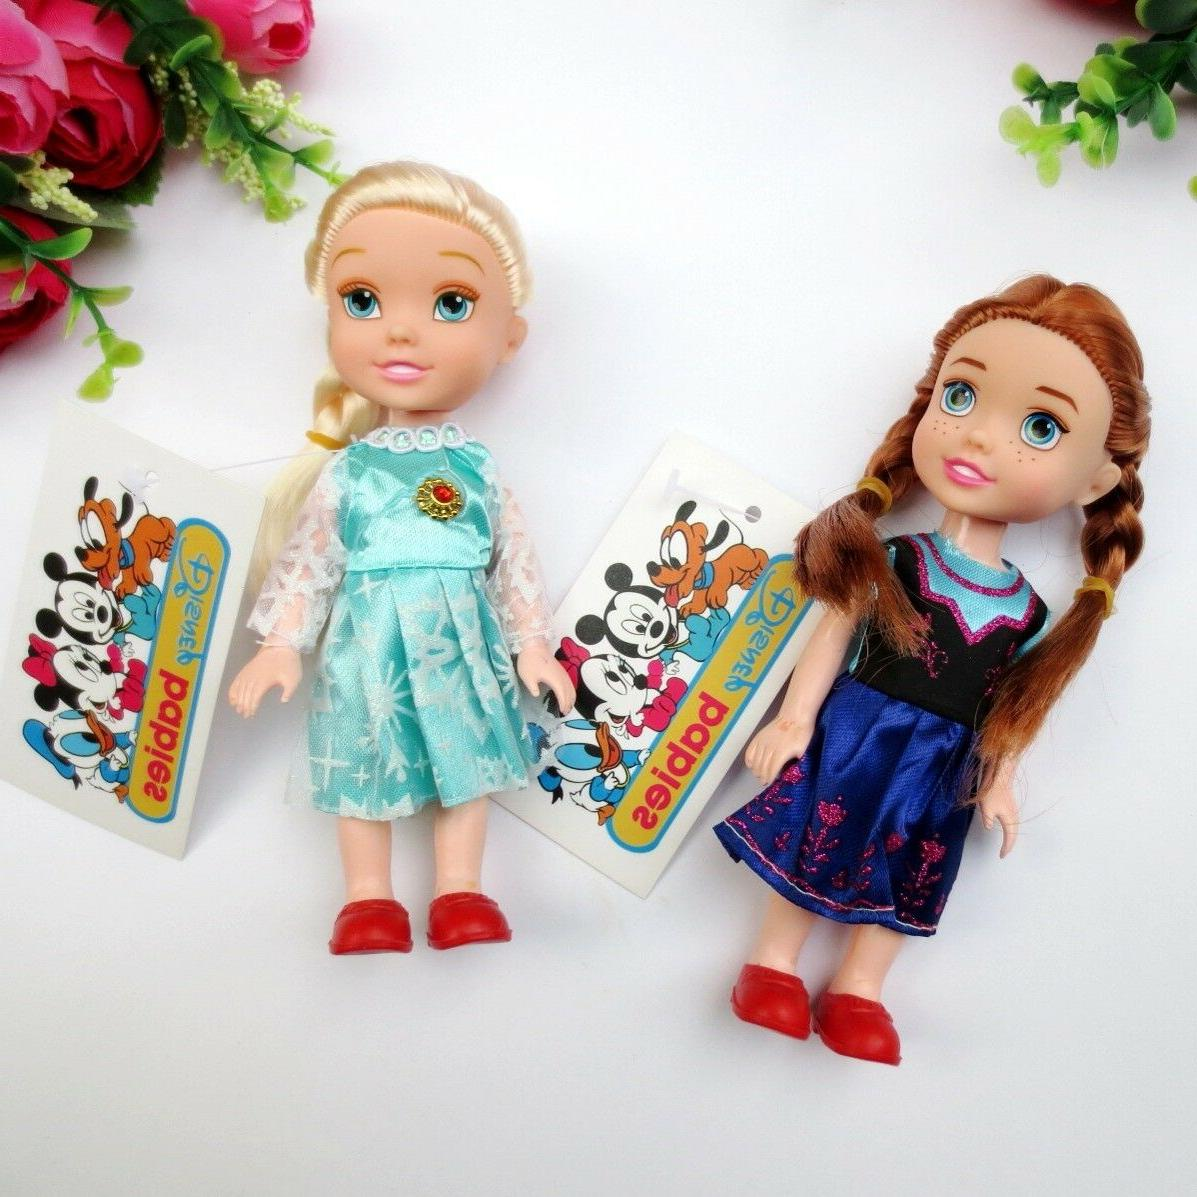 16 cm Children Baby Toddlers Kids Anna & Dolls Toy